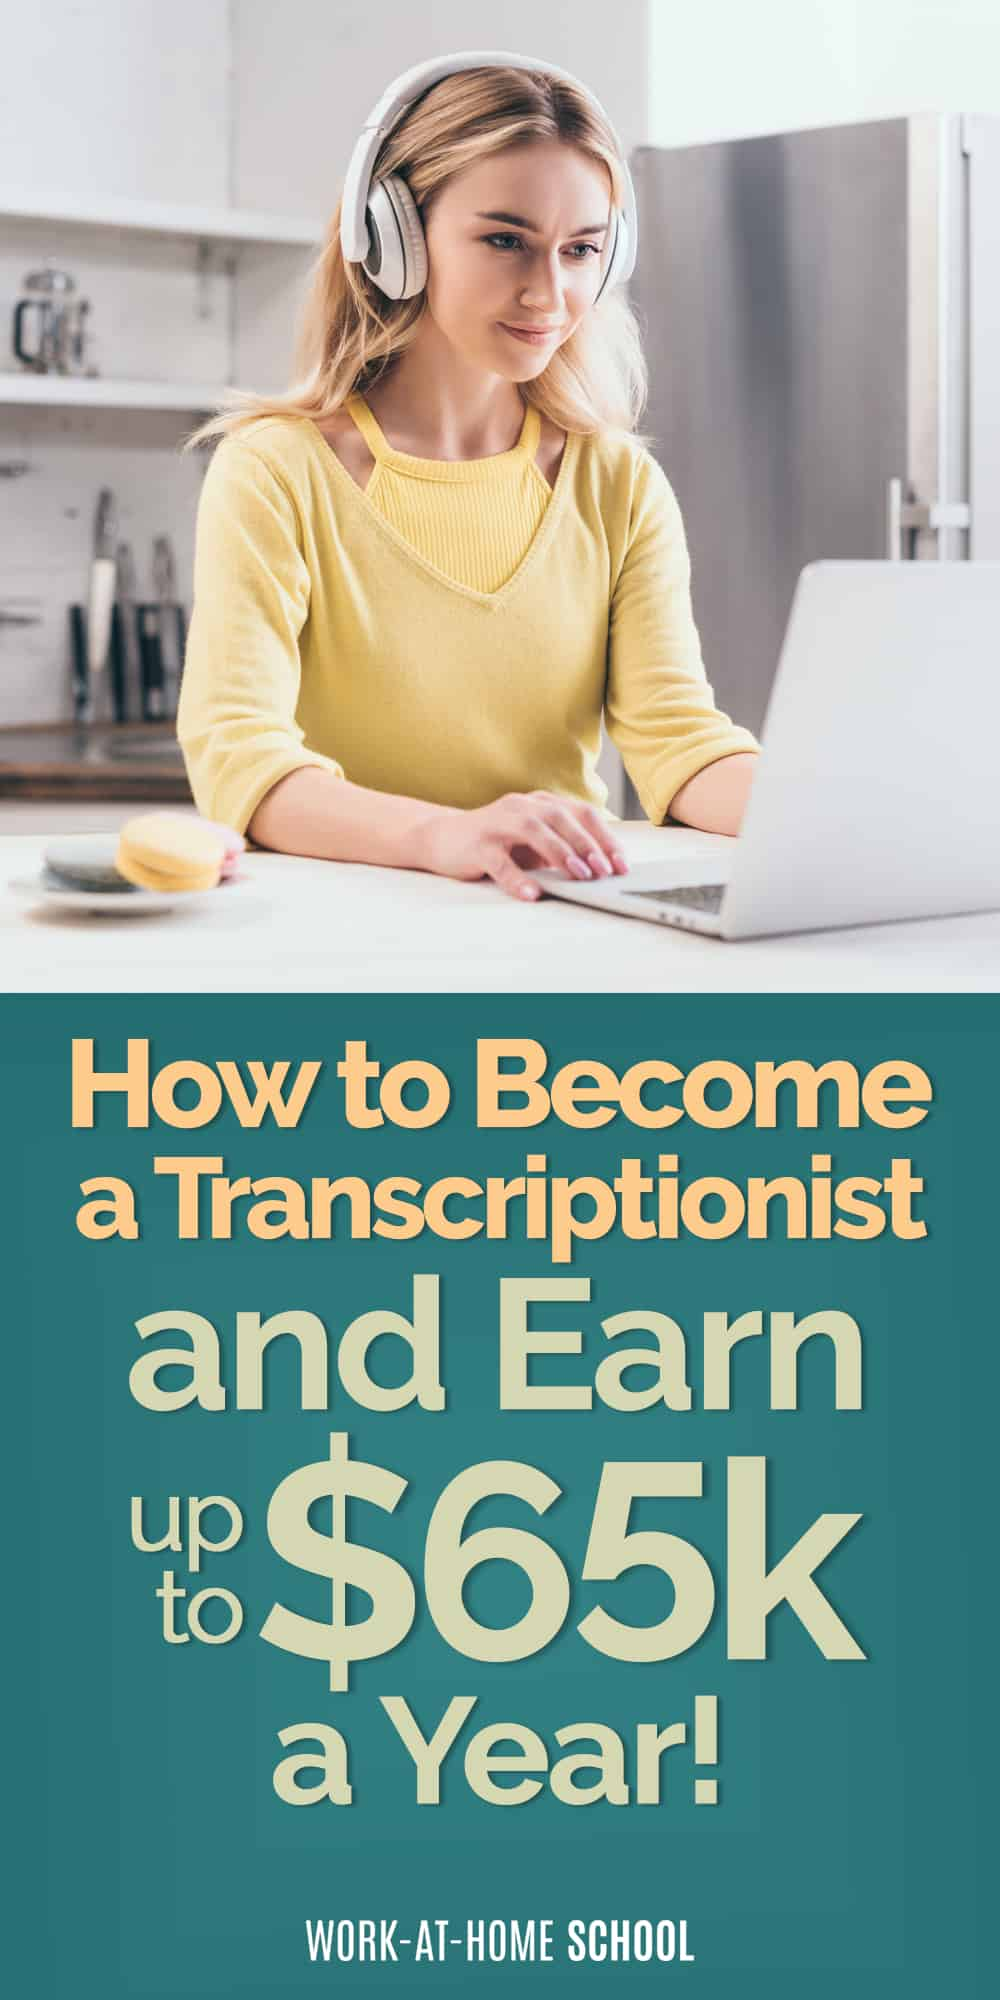 Looking for ways to earn between $58K and $65K a year? Become a transcriptionist!